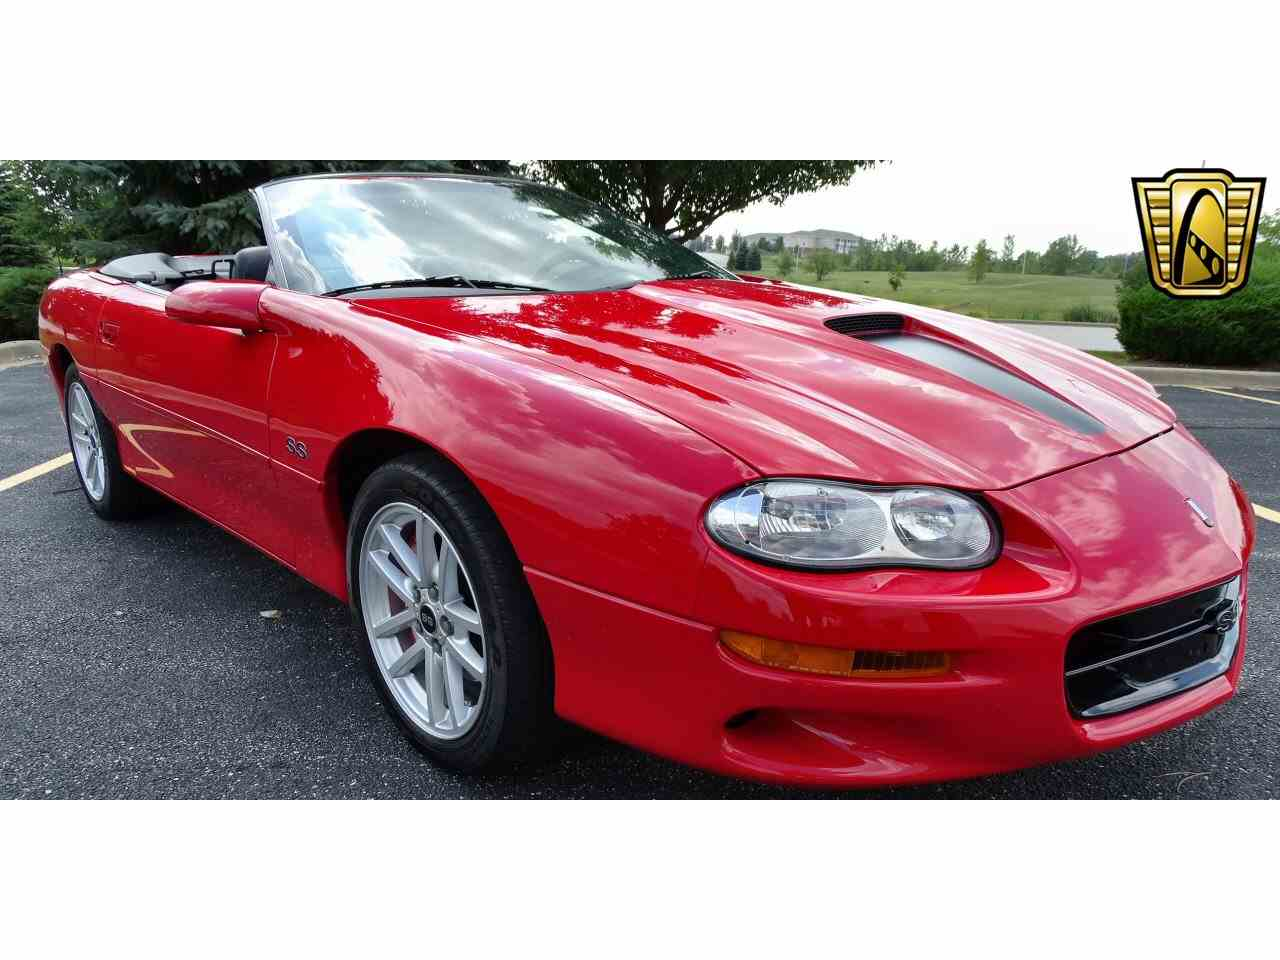 Large Picture of '02 Camaro - $20,995.00 - LRV9